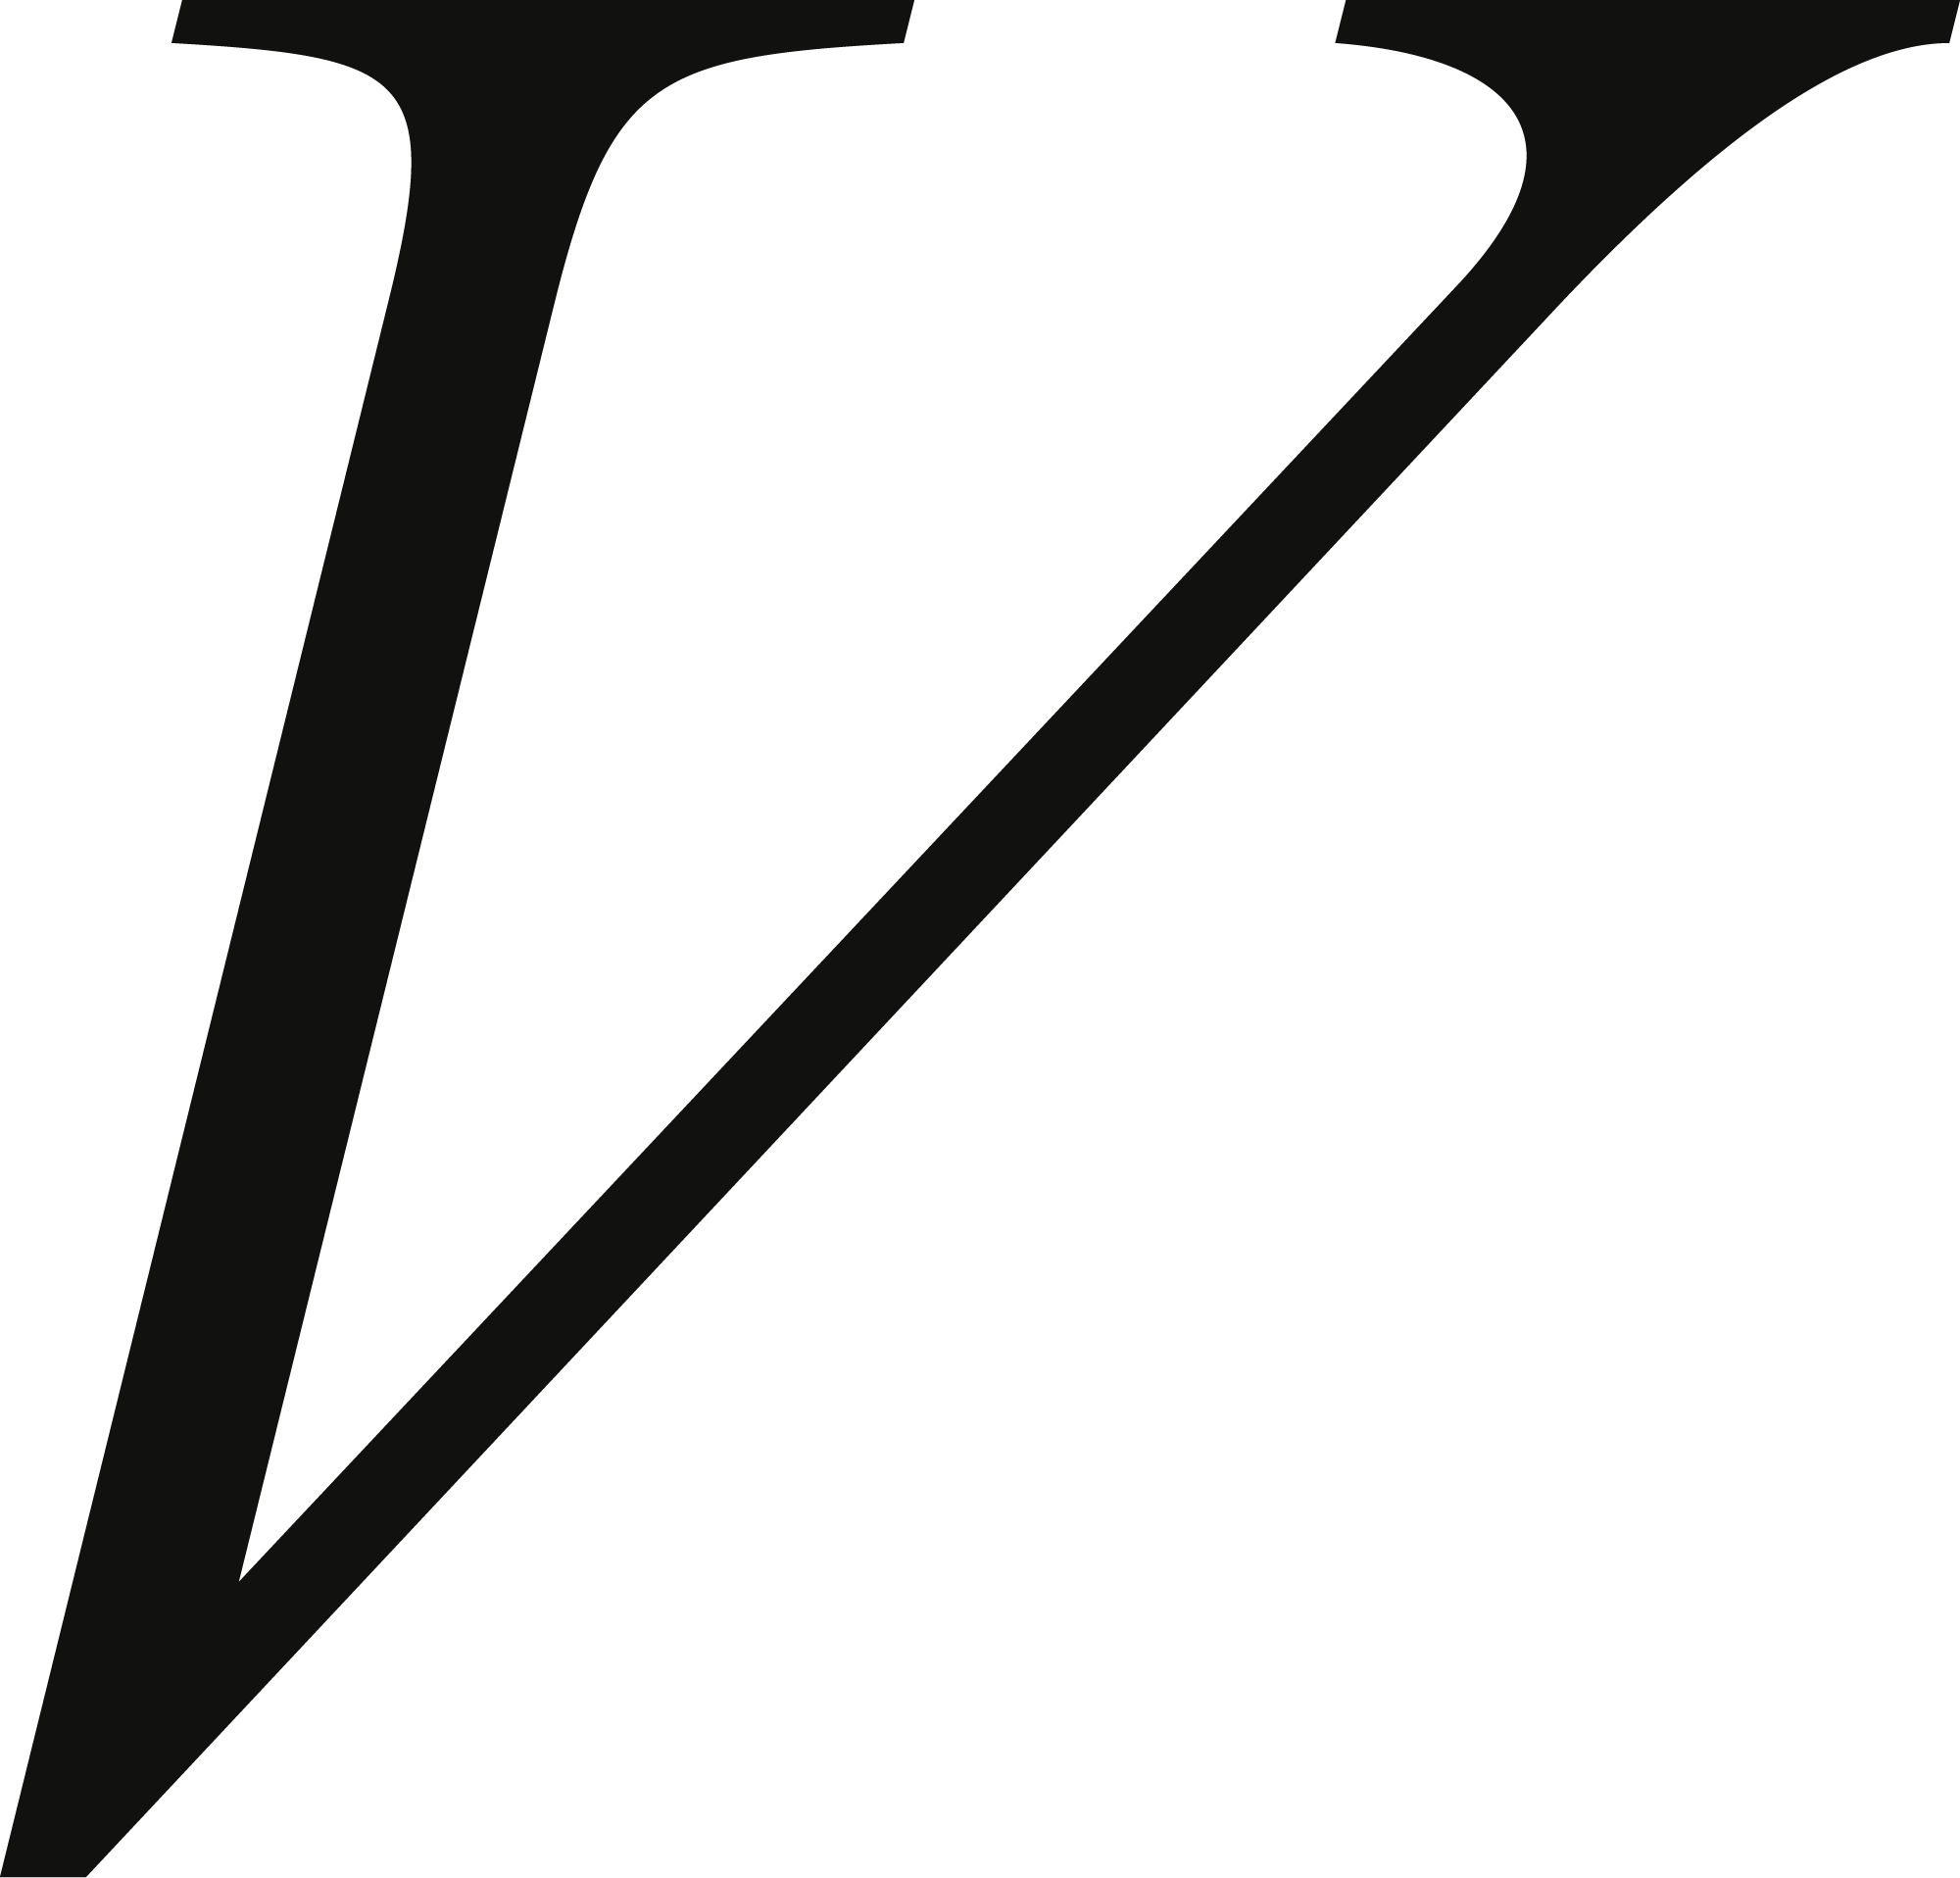 Vail_Favicon.png